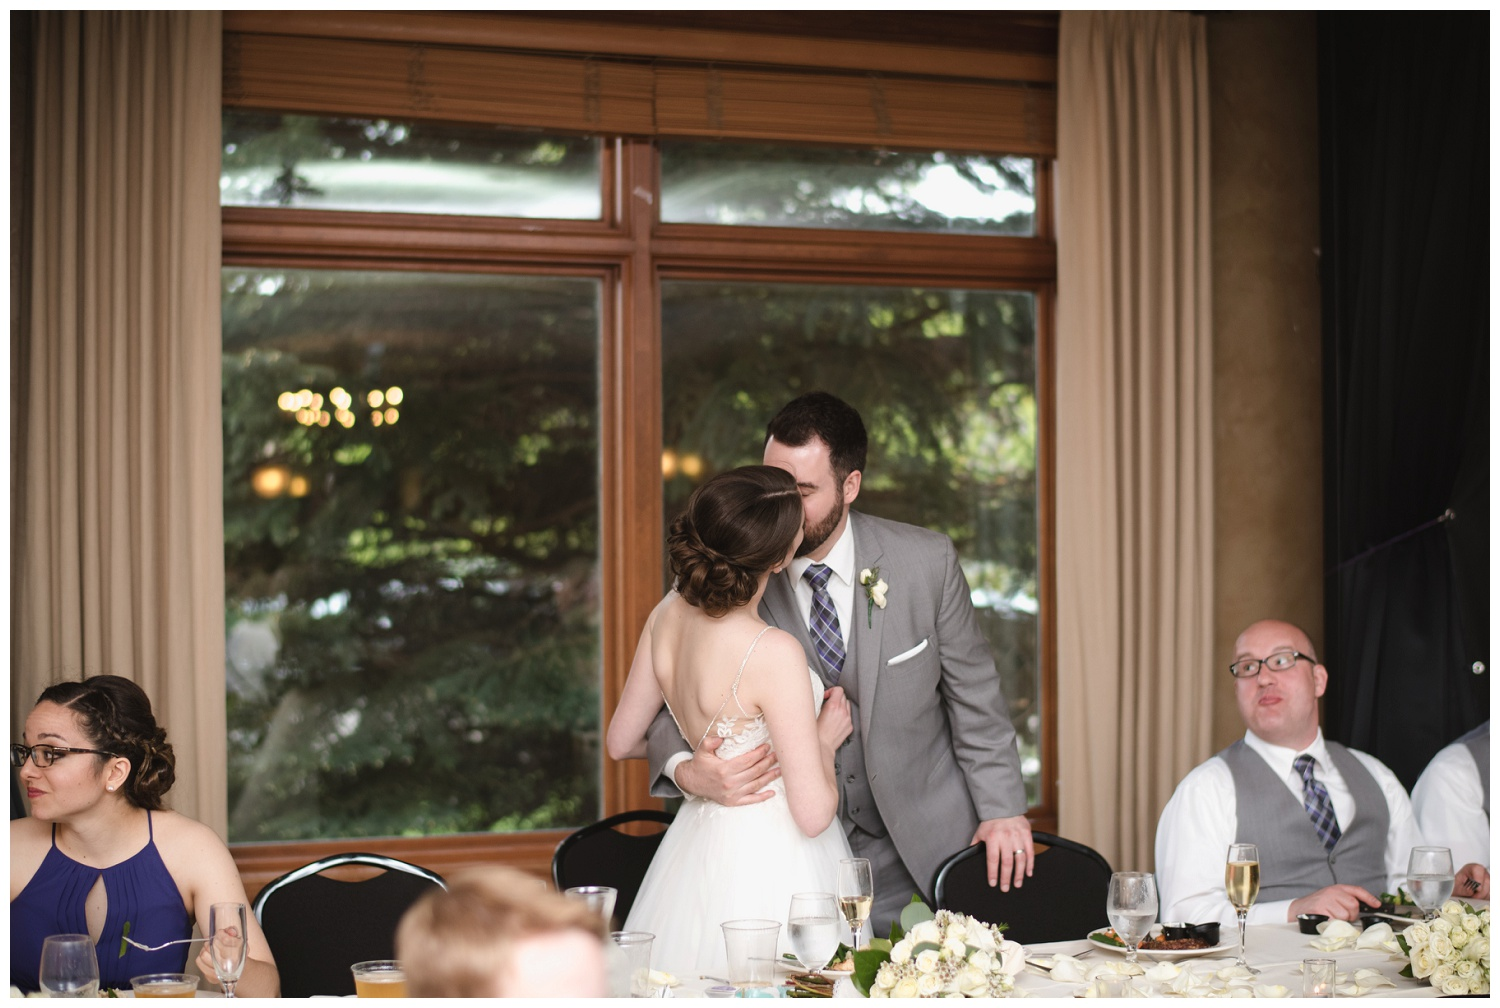 Gianna's Photography Wedding Portrait Legends Golf Club Minnesota